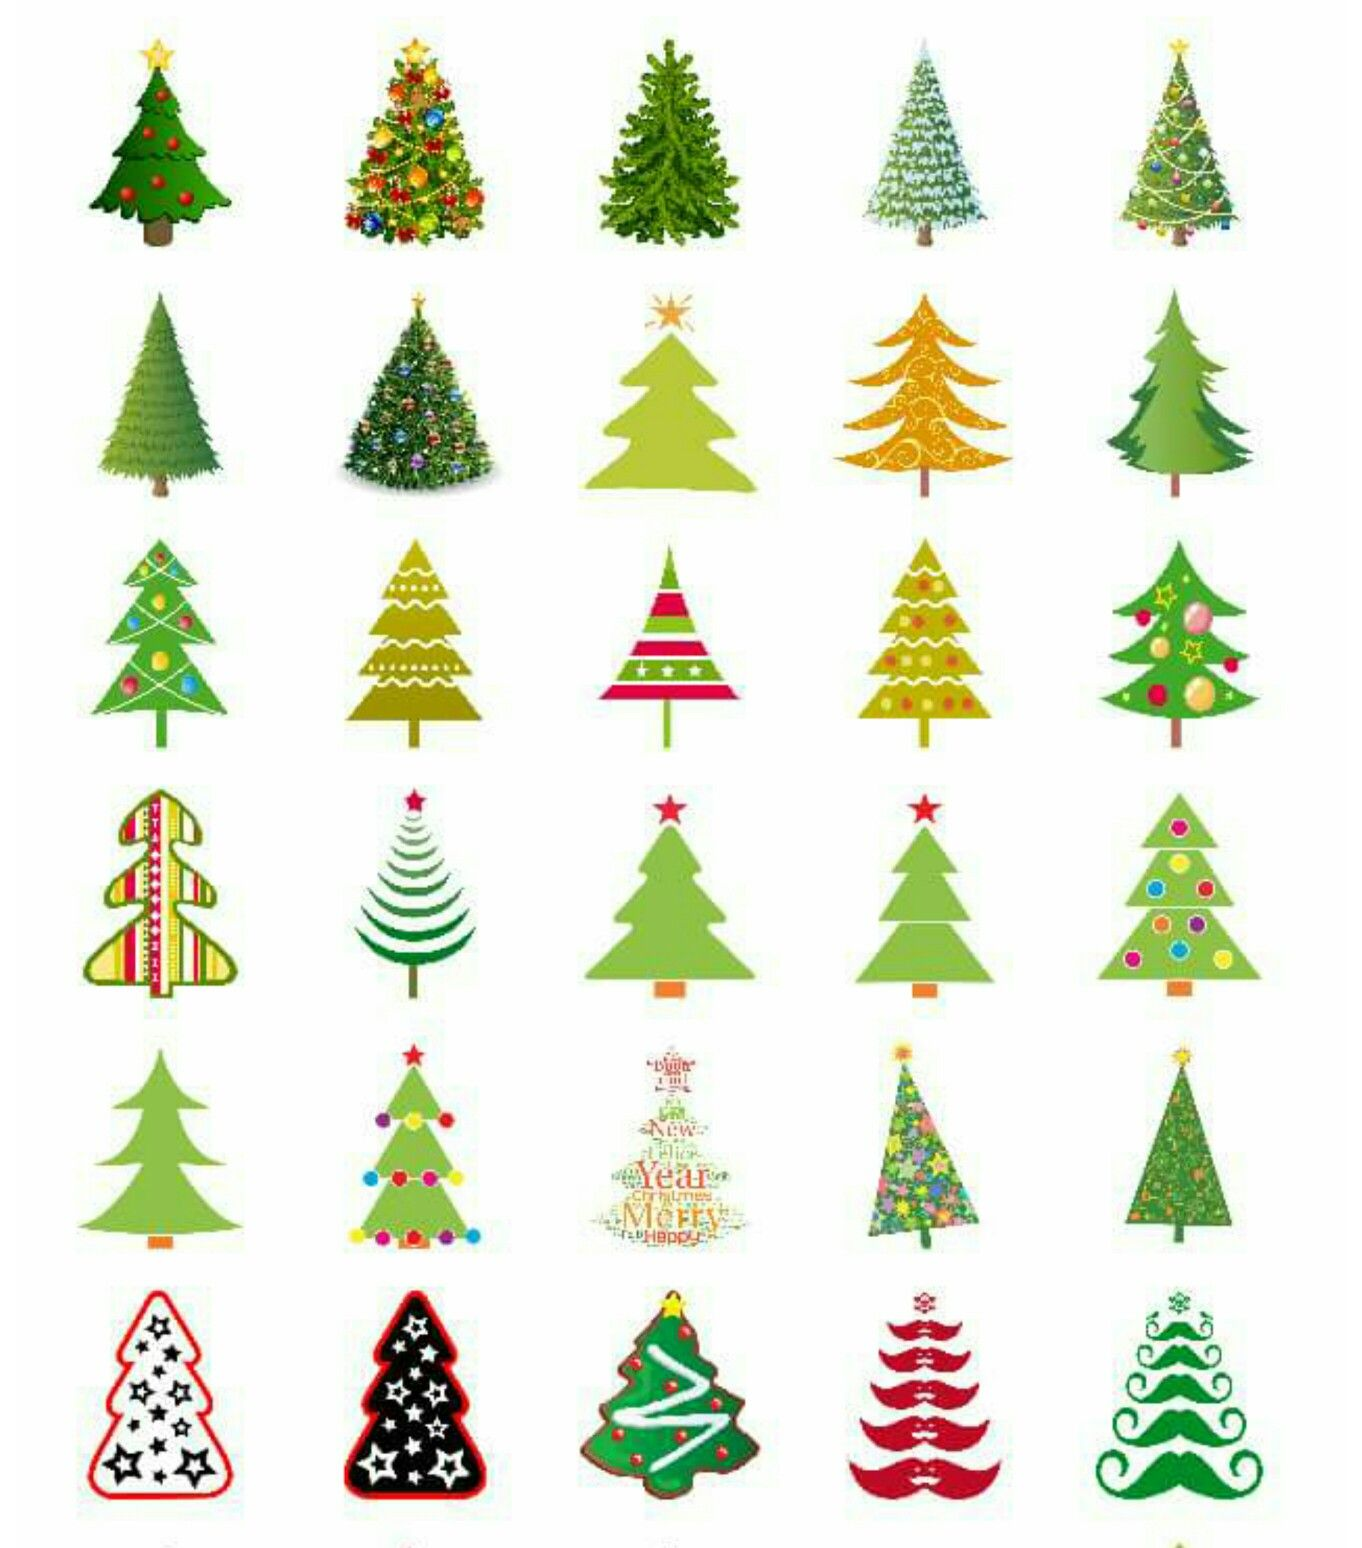 Emoji Chrismas Newyear 2017 كل عام وانتم بخير ايموجي Happy New Year Christmas Doodles Christmas Typography Christmas Prints